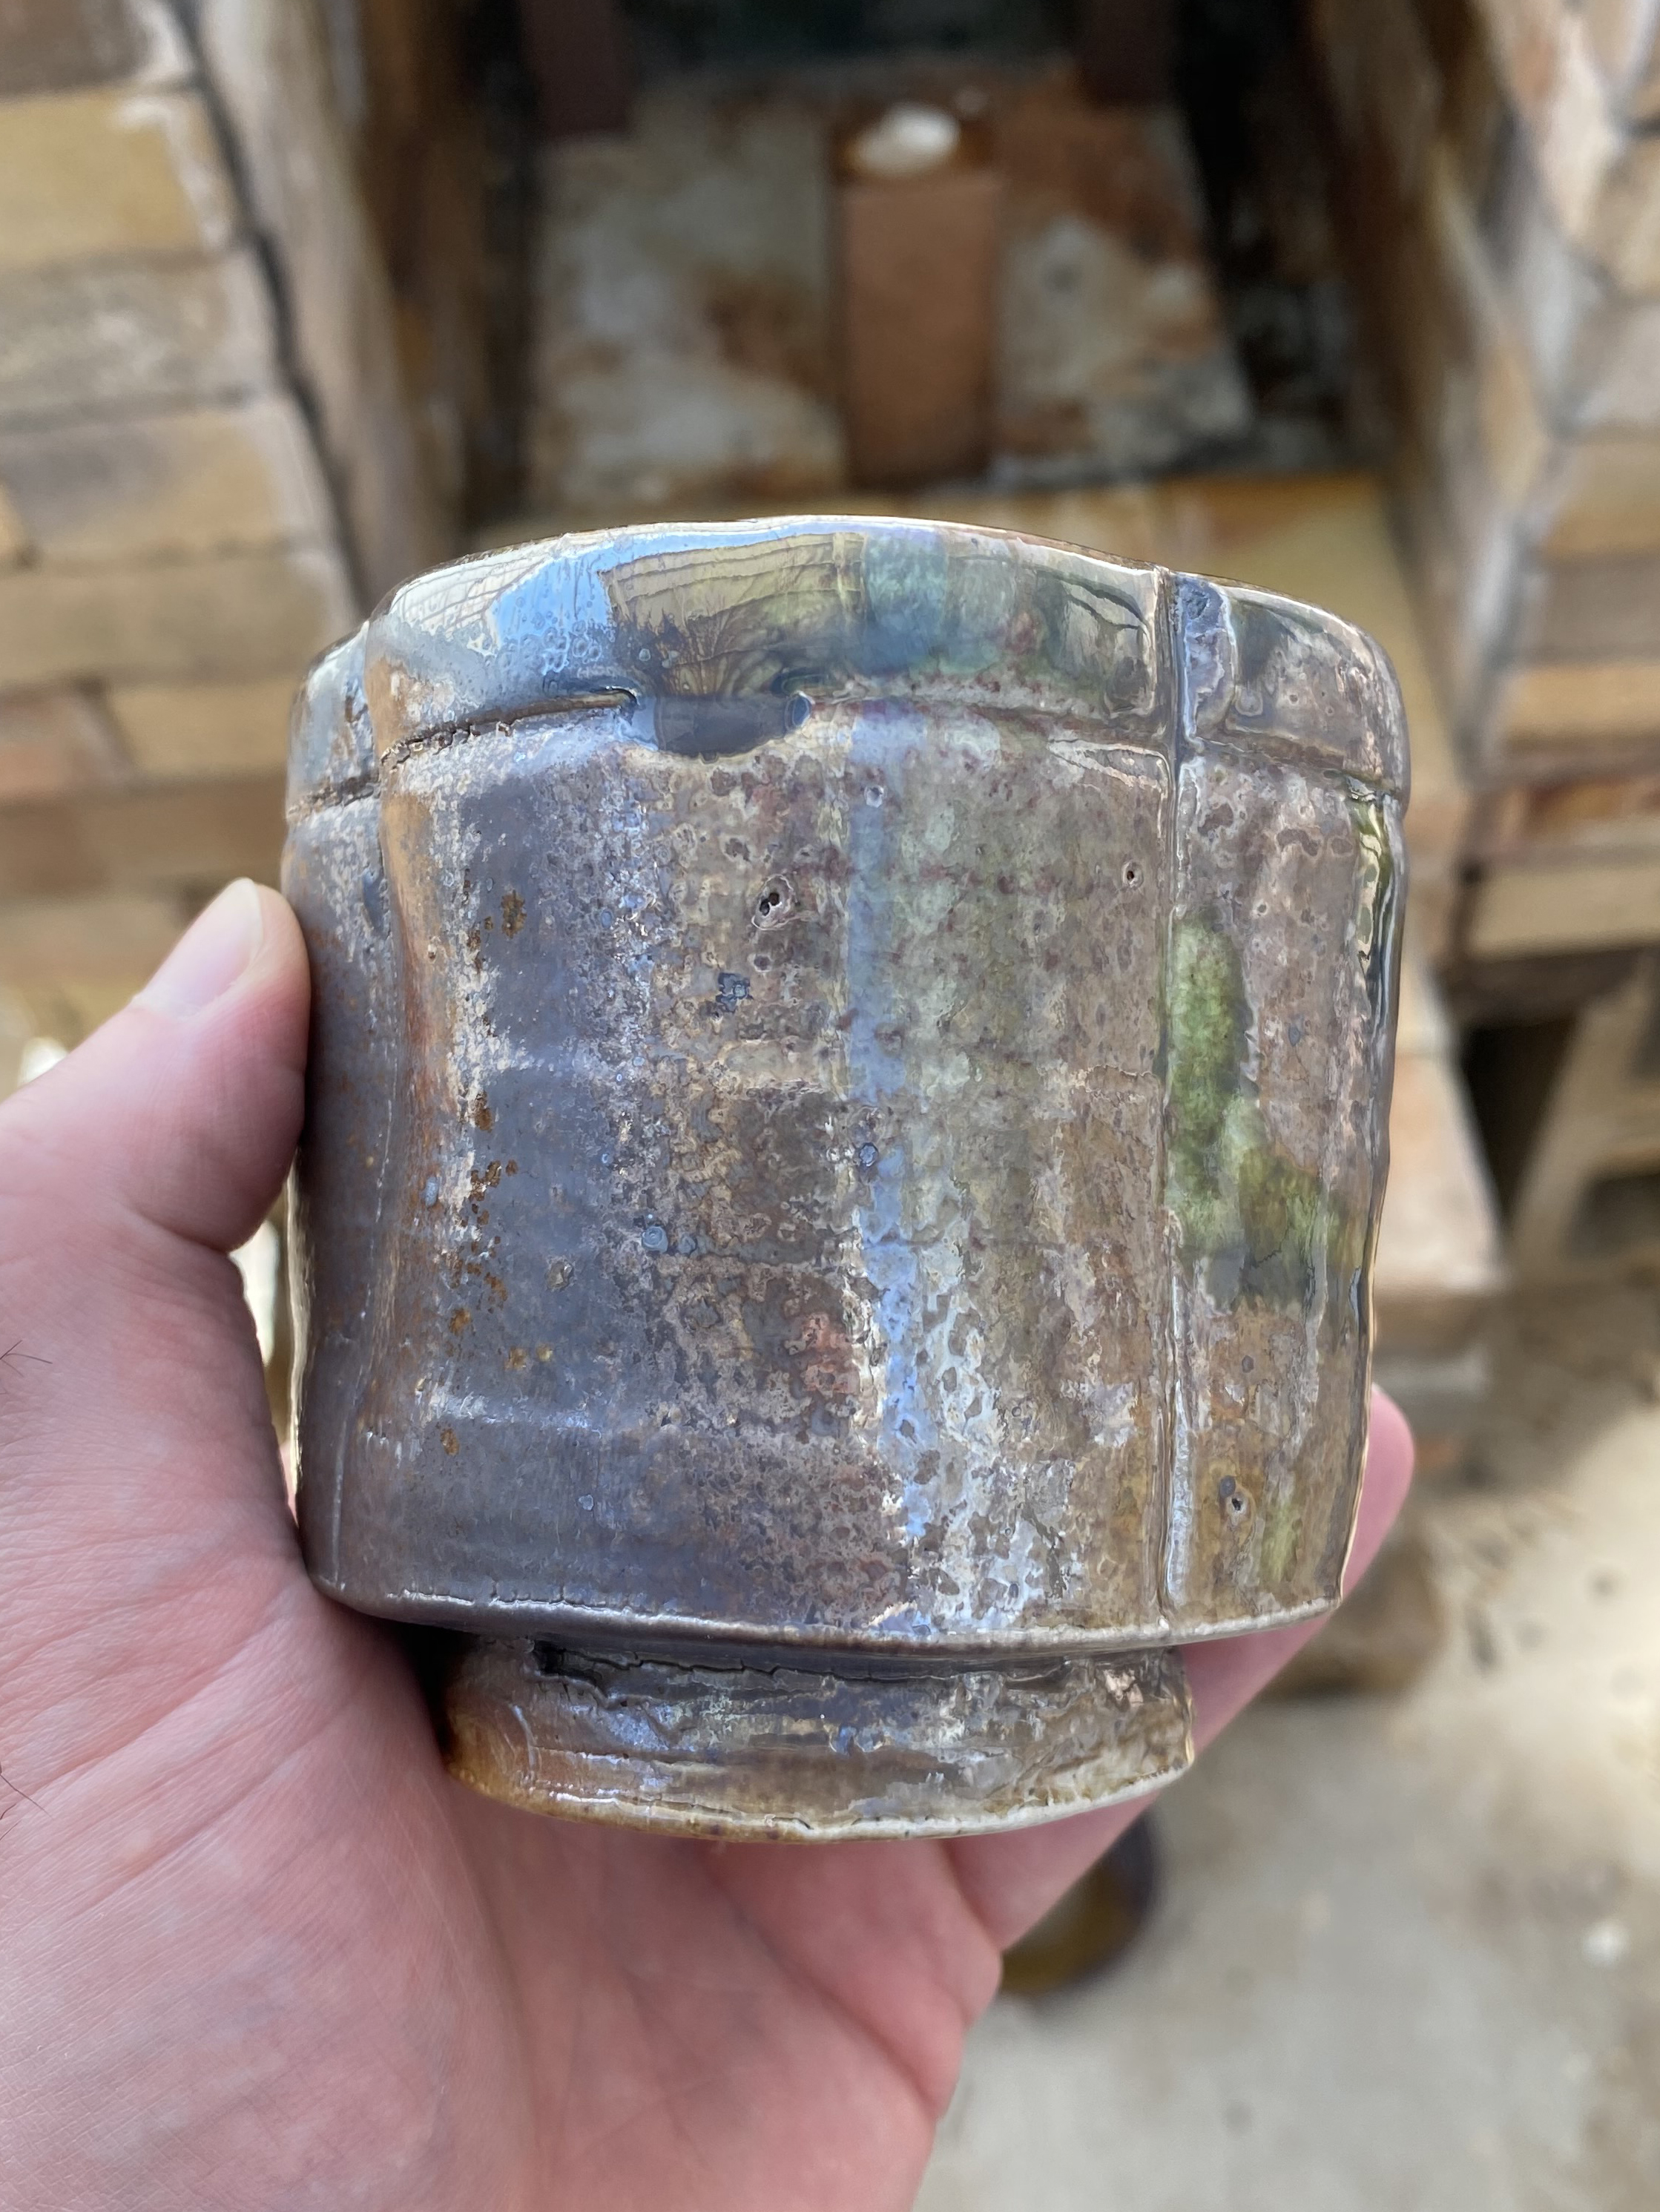 A ceramic cup with a slightly reflective, metallic-looking surface